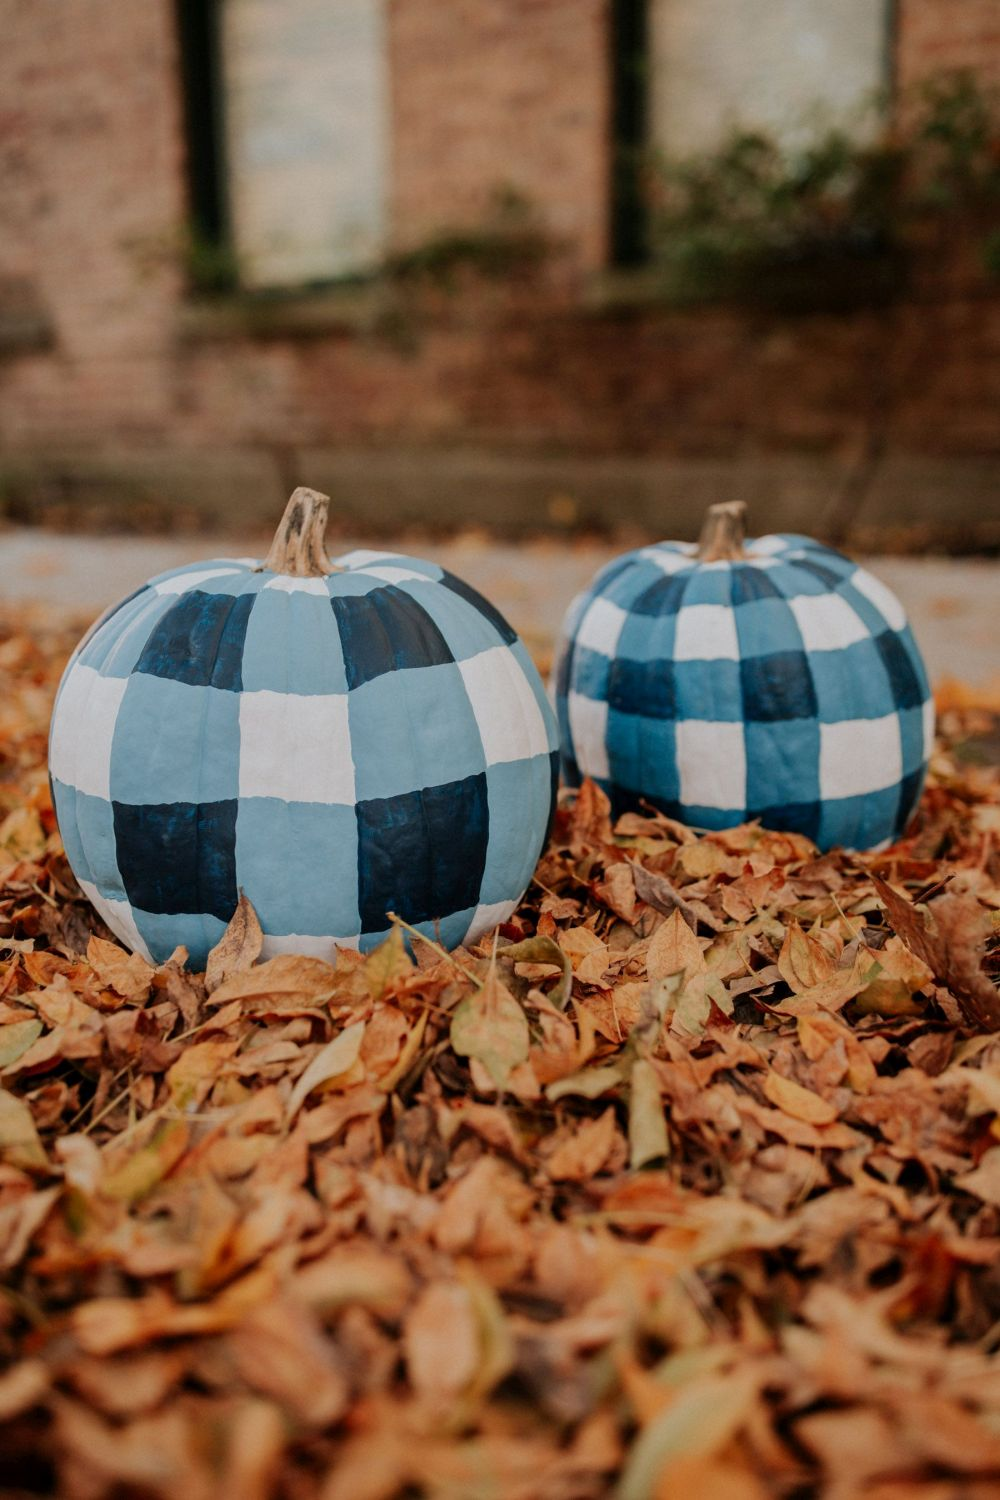 1569497091 502 how to paint pumpkins and turn them into lovely fall decorations - How To Paint Pumpkins And Turn Them Into Lovely Fall Decorations